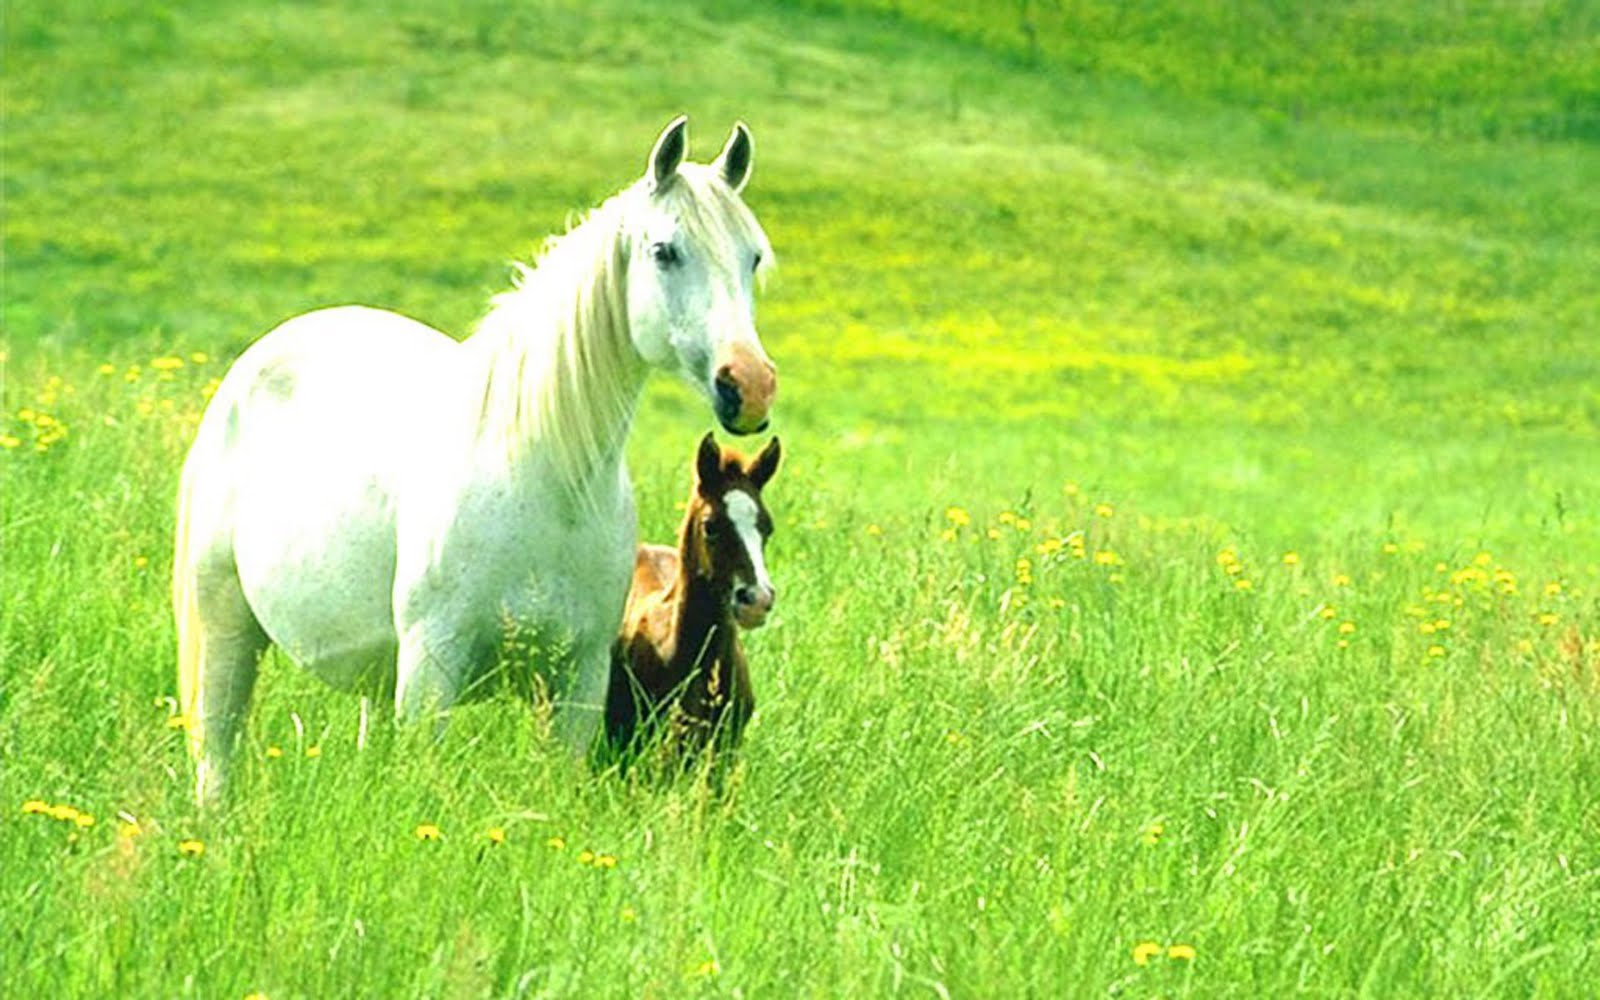 Top Wallpaper Horse Nature - animalswallpapersabouthorsesandponies  HD_84616.jpg